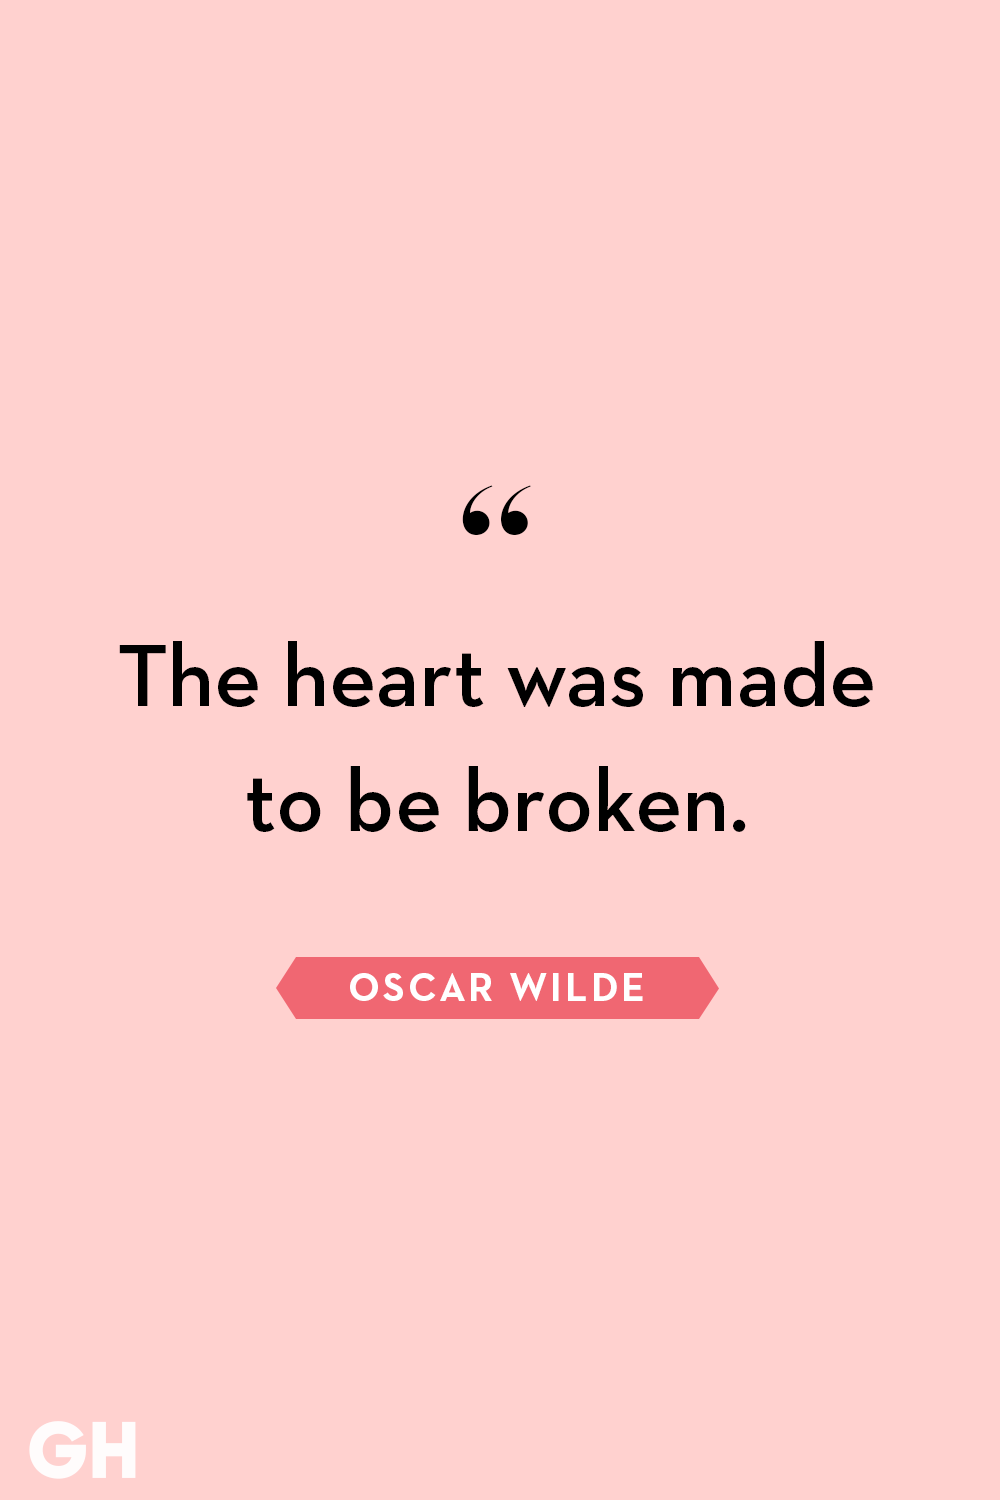 8 Quotes About Broken Hearts - Wise Words About Heartbreak